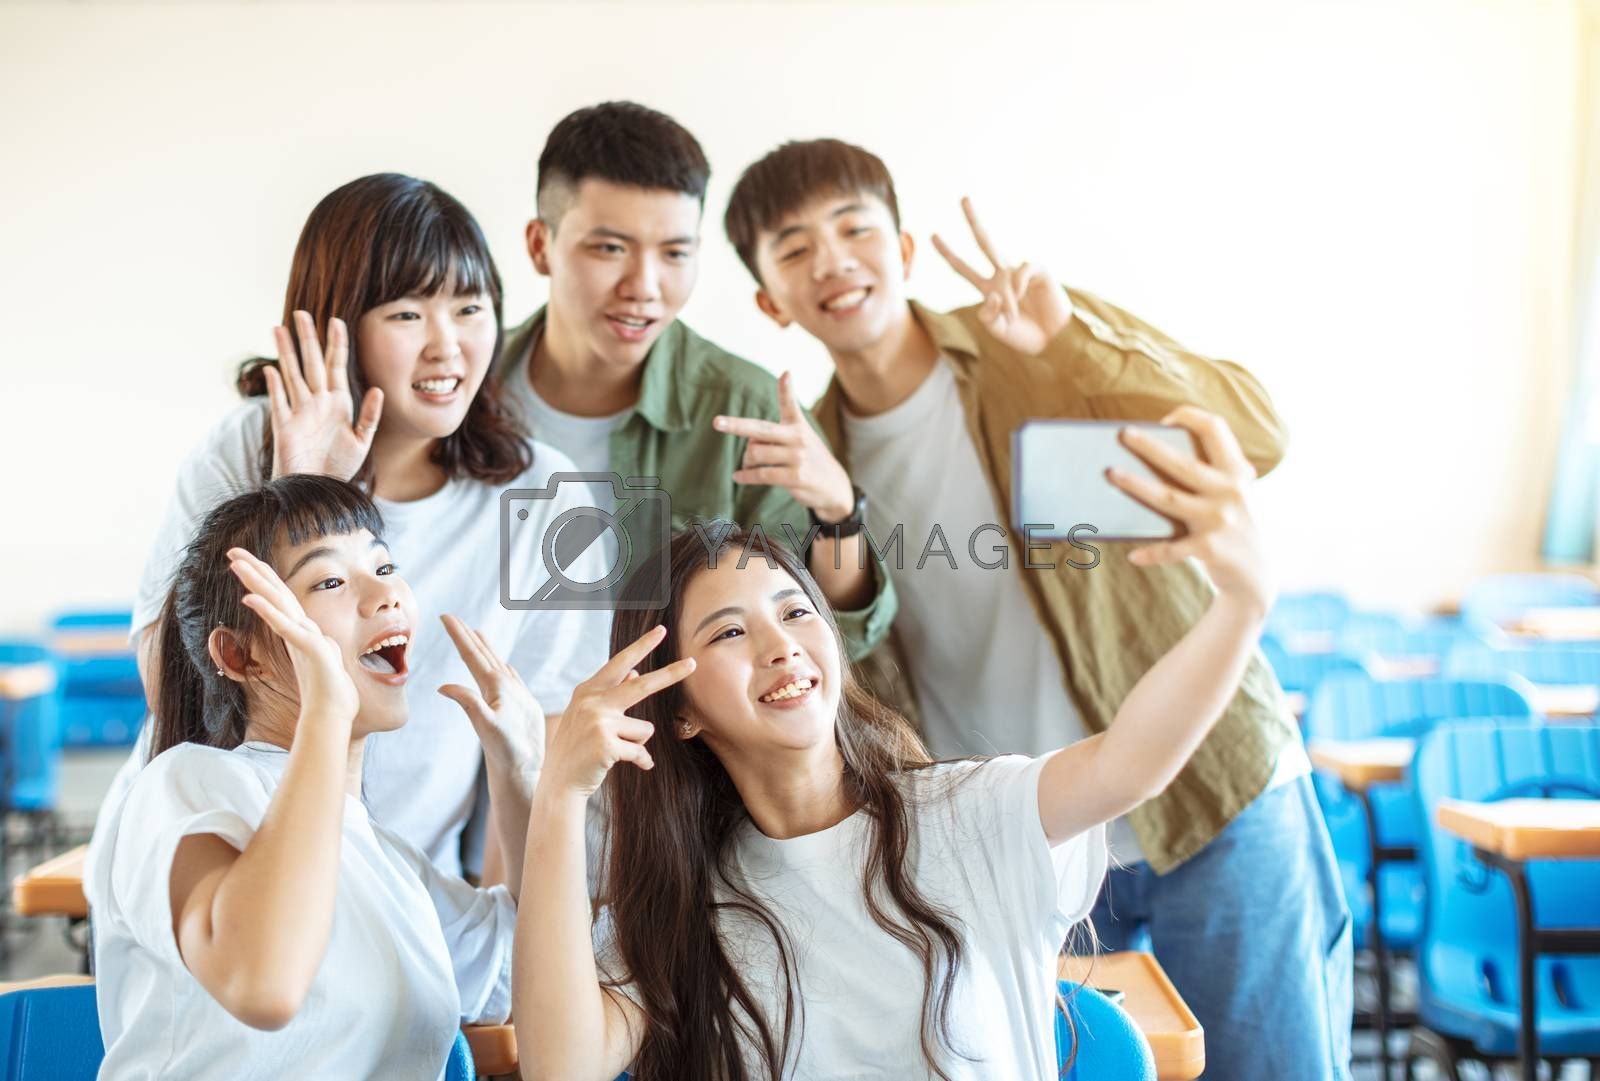 happy young group of teenagers making fun selfie in classroom